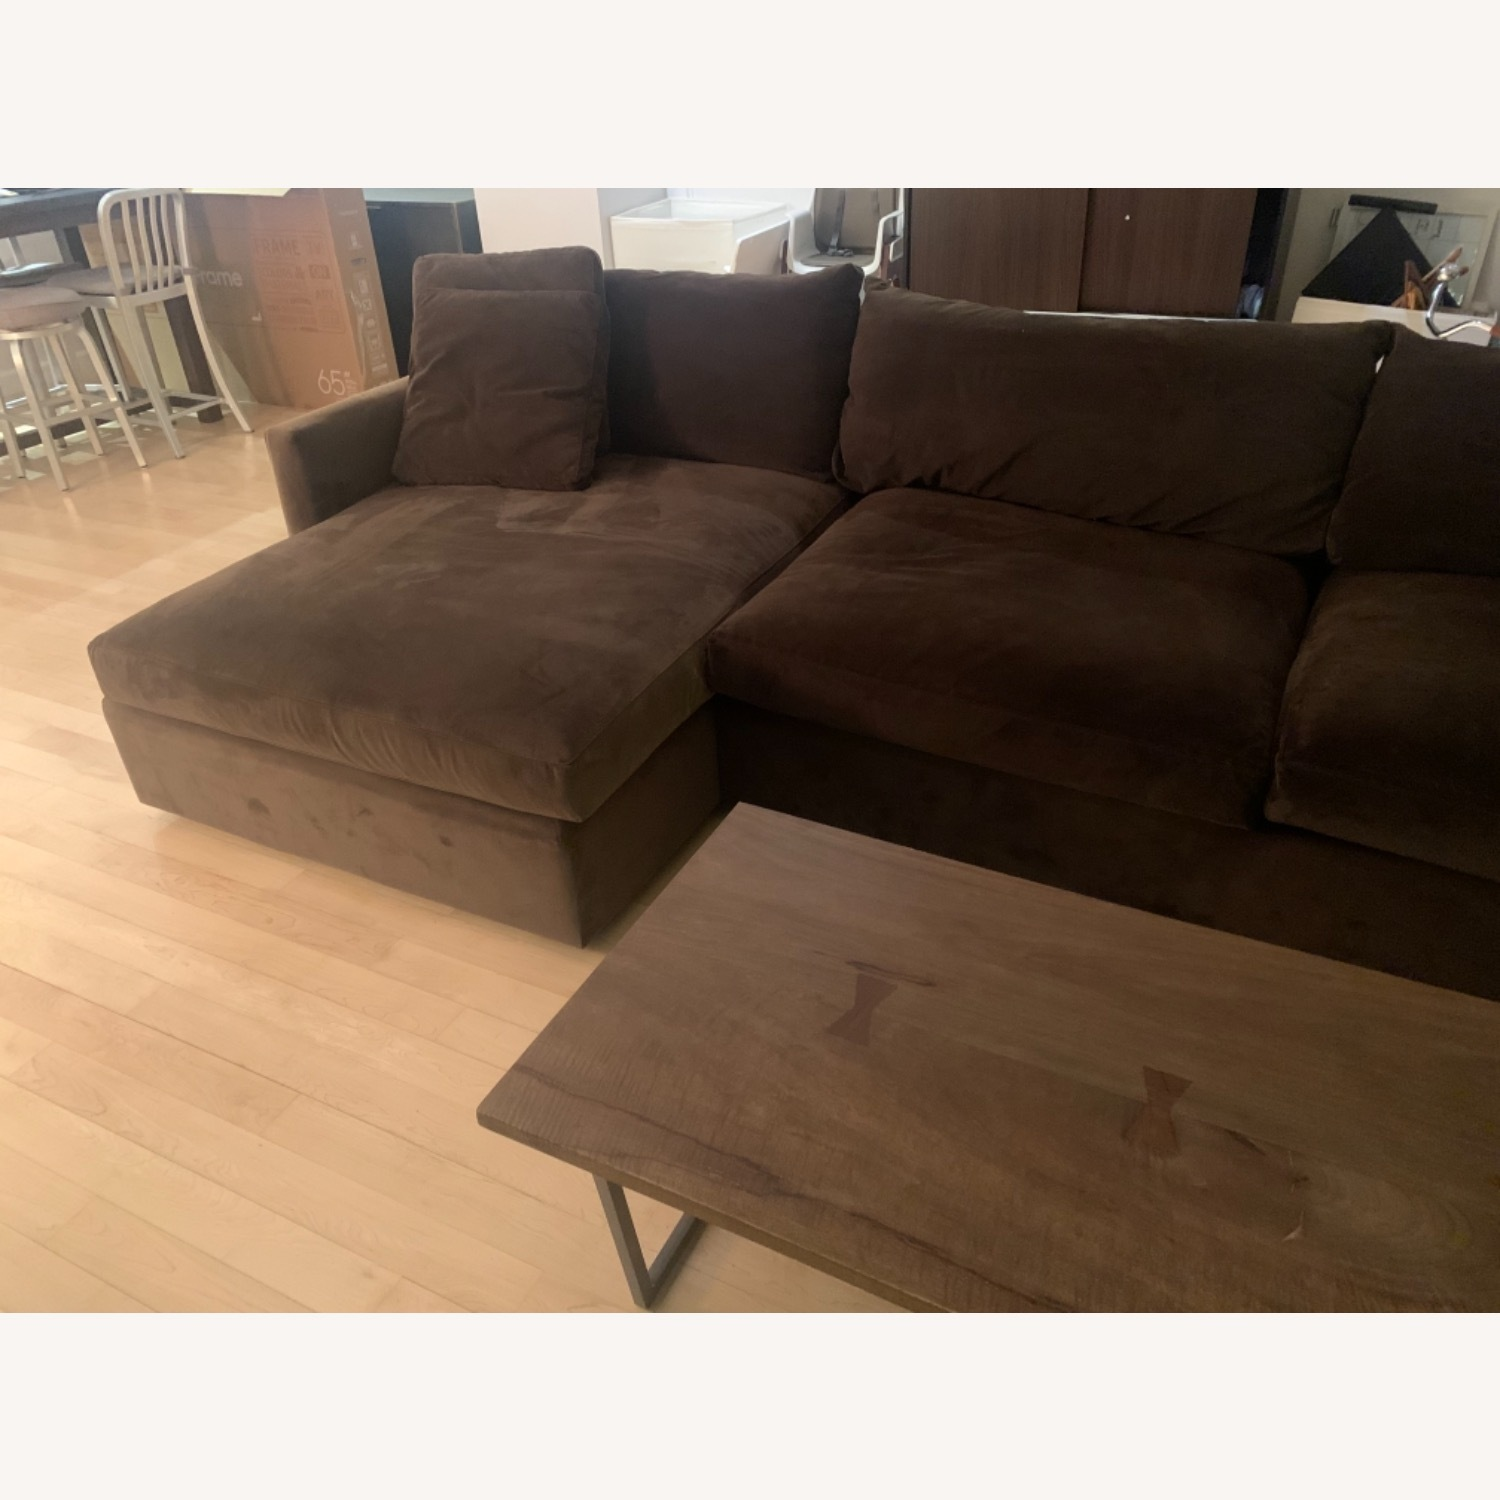 Crate & Barrel Lounge Chaise Brown Color - image-2